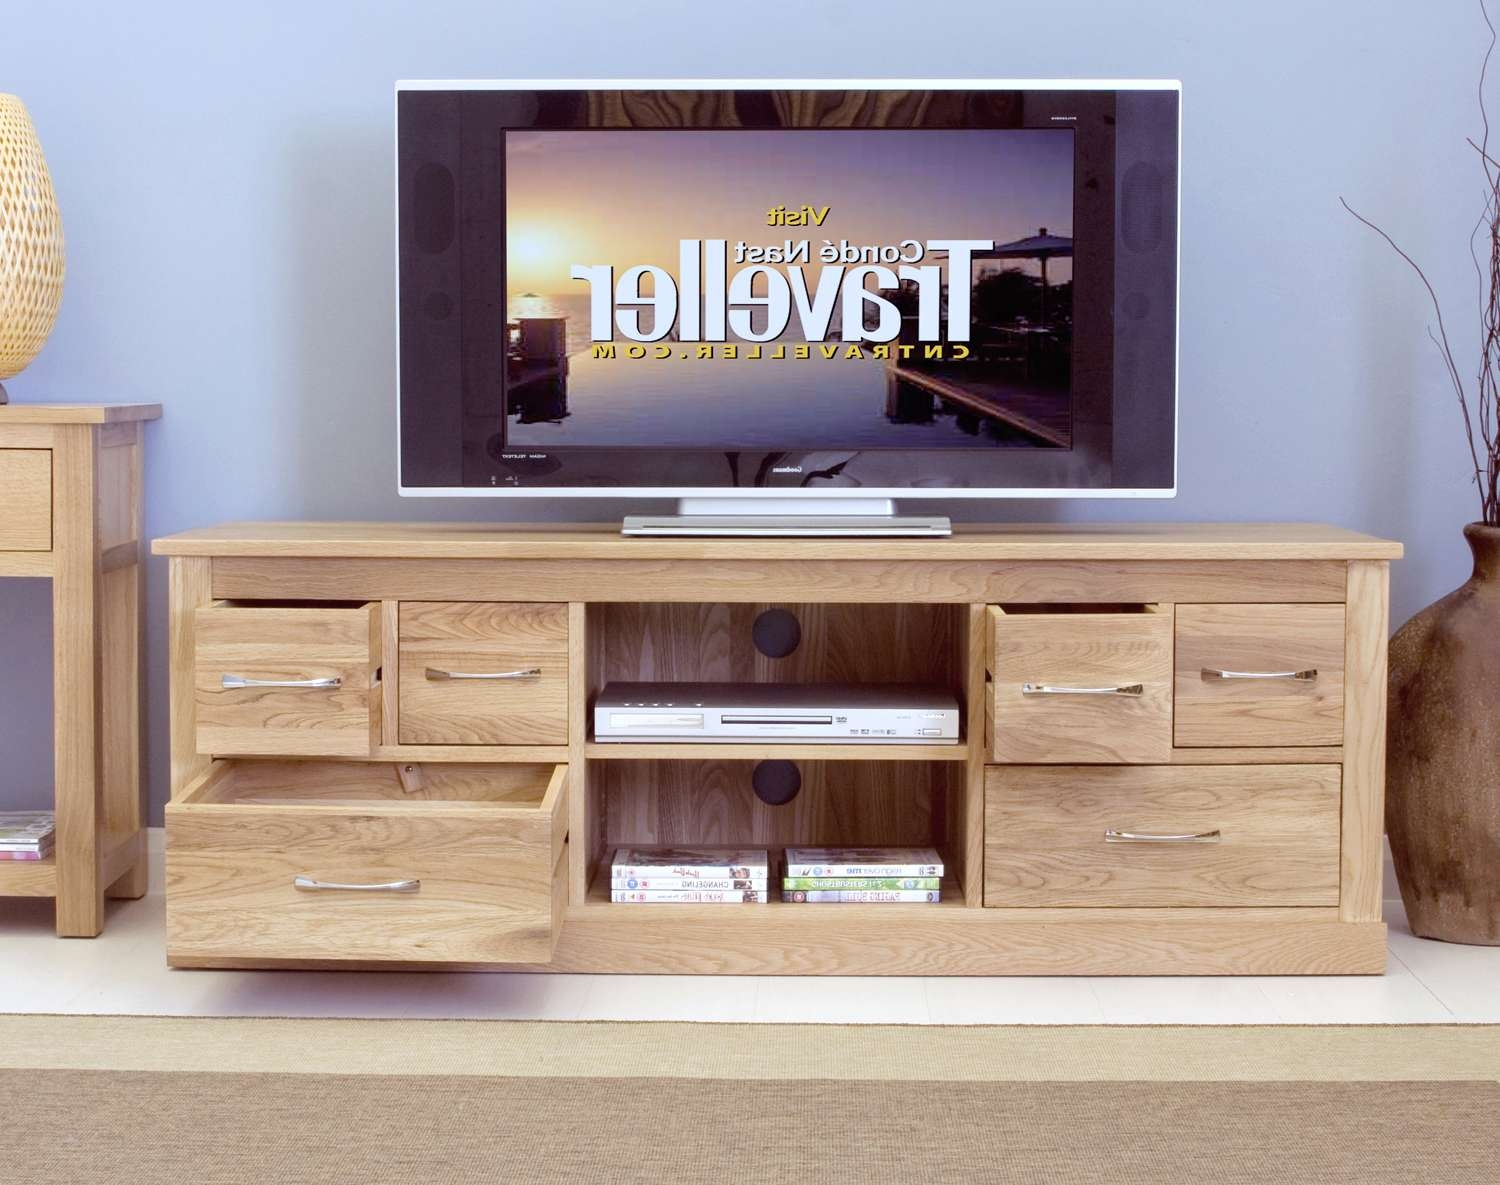 Oak Widescreen Tv Cabinet With 6 Drawers | Big Blu Furniture Within Widescreen Tv Cabinets (View 14 of 20)